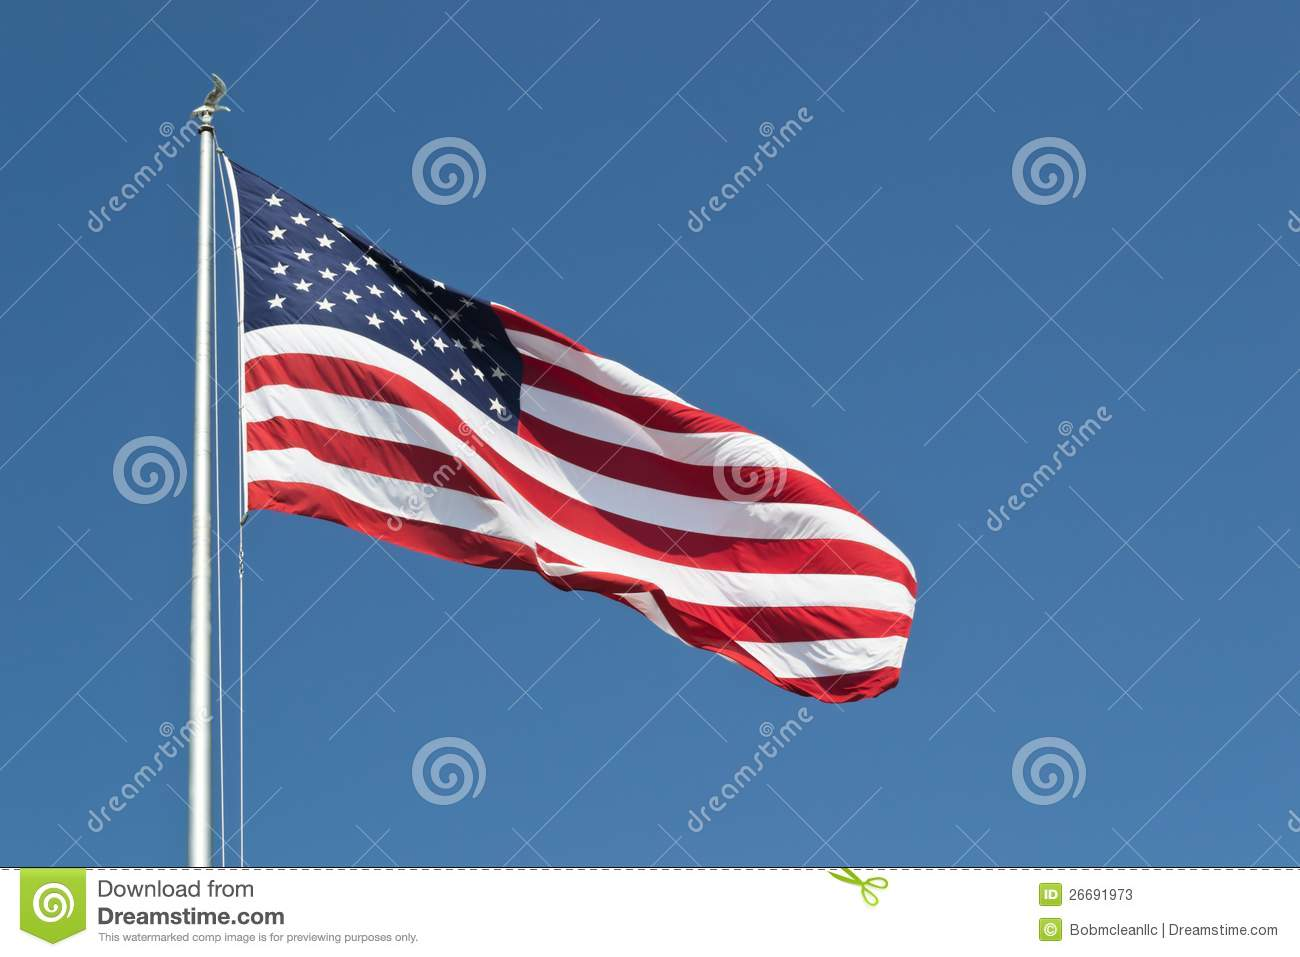 Download Large United States Flag Horizontal Stock Image - Image of flagpole, stars: 26691973